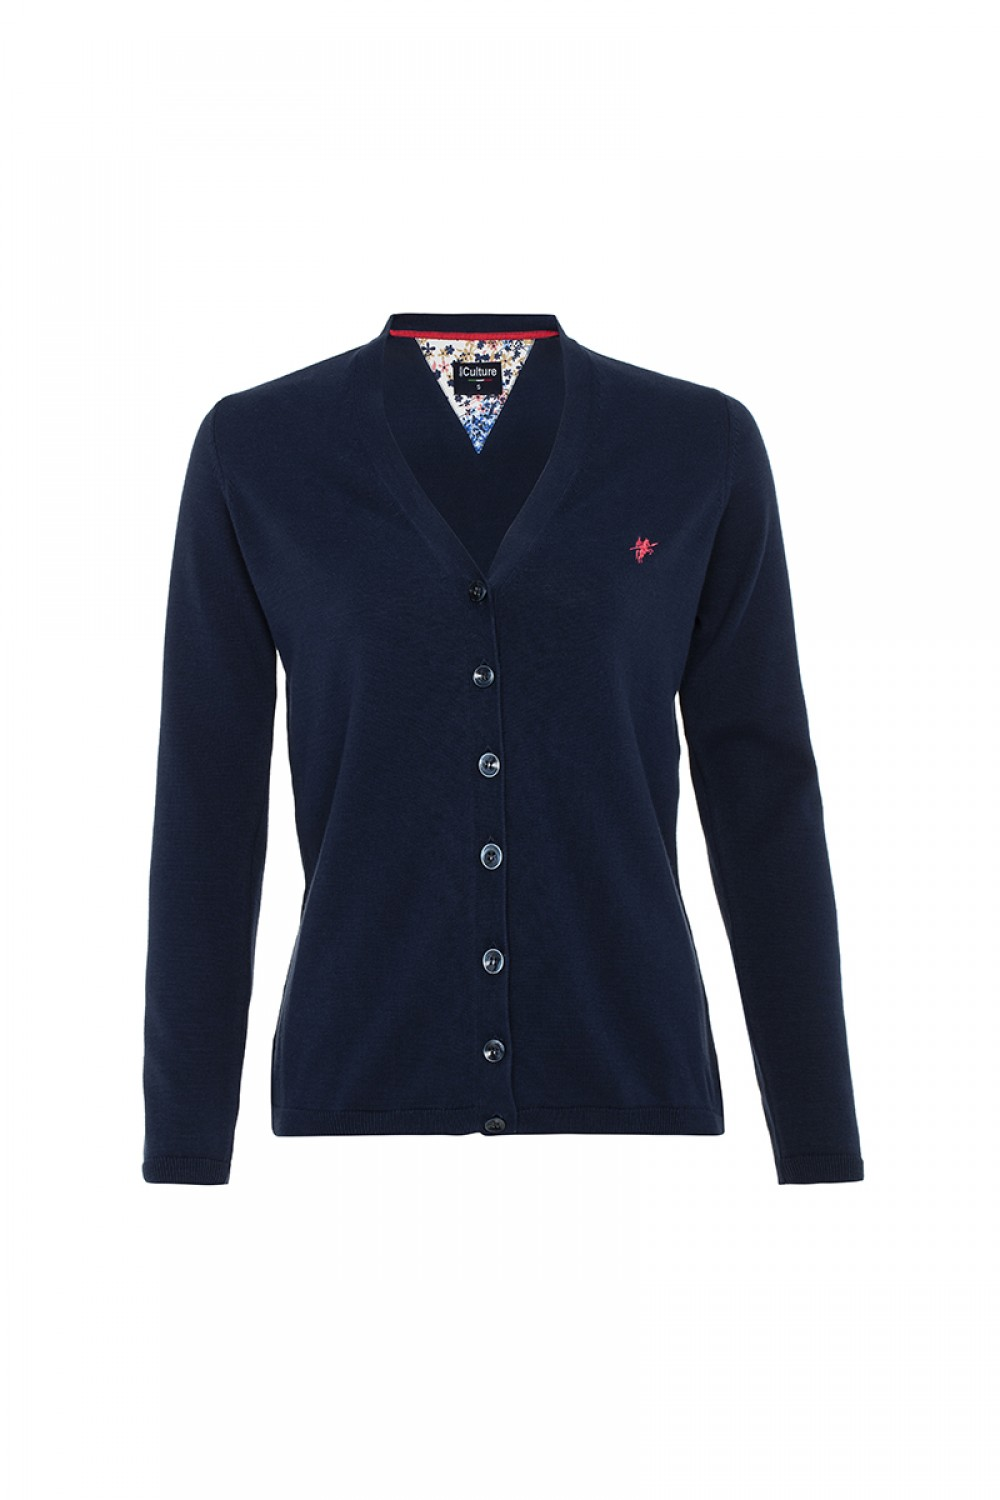 Women's Cardigan Button V-neck Navy